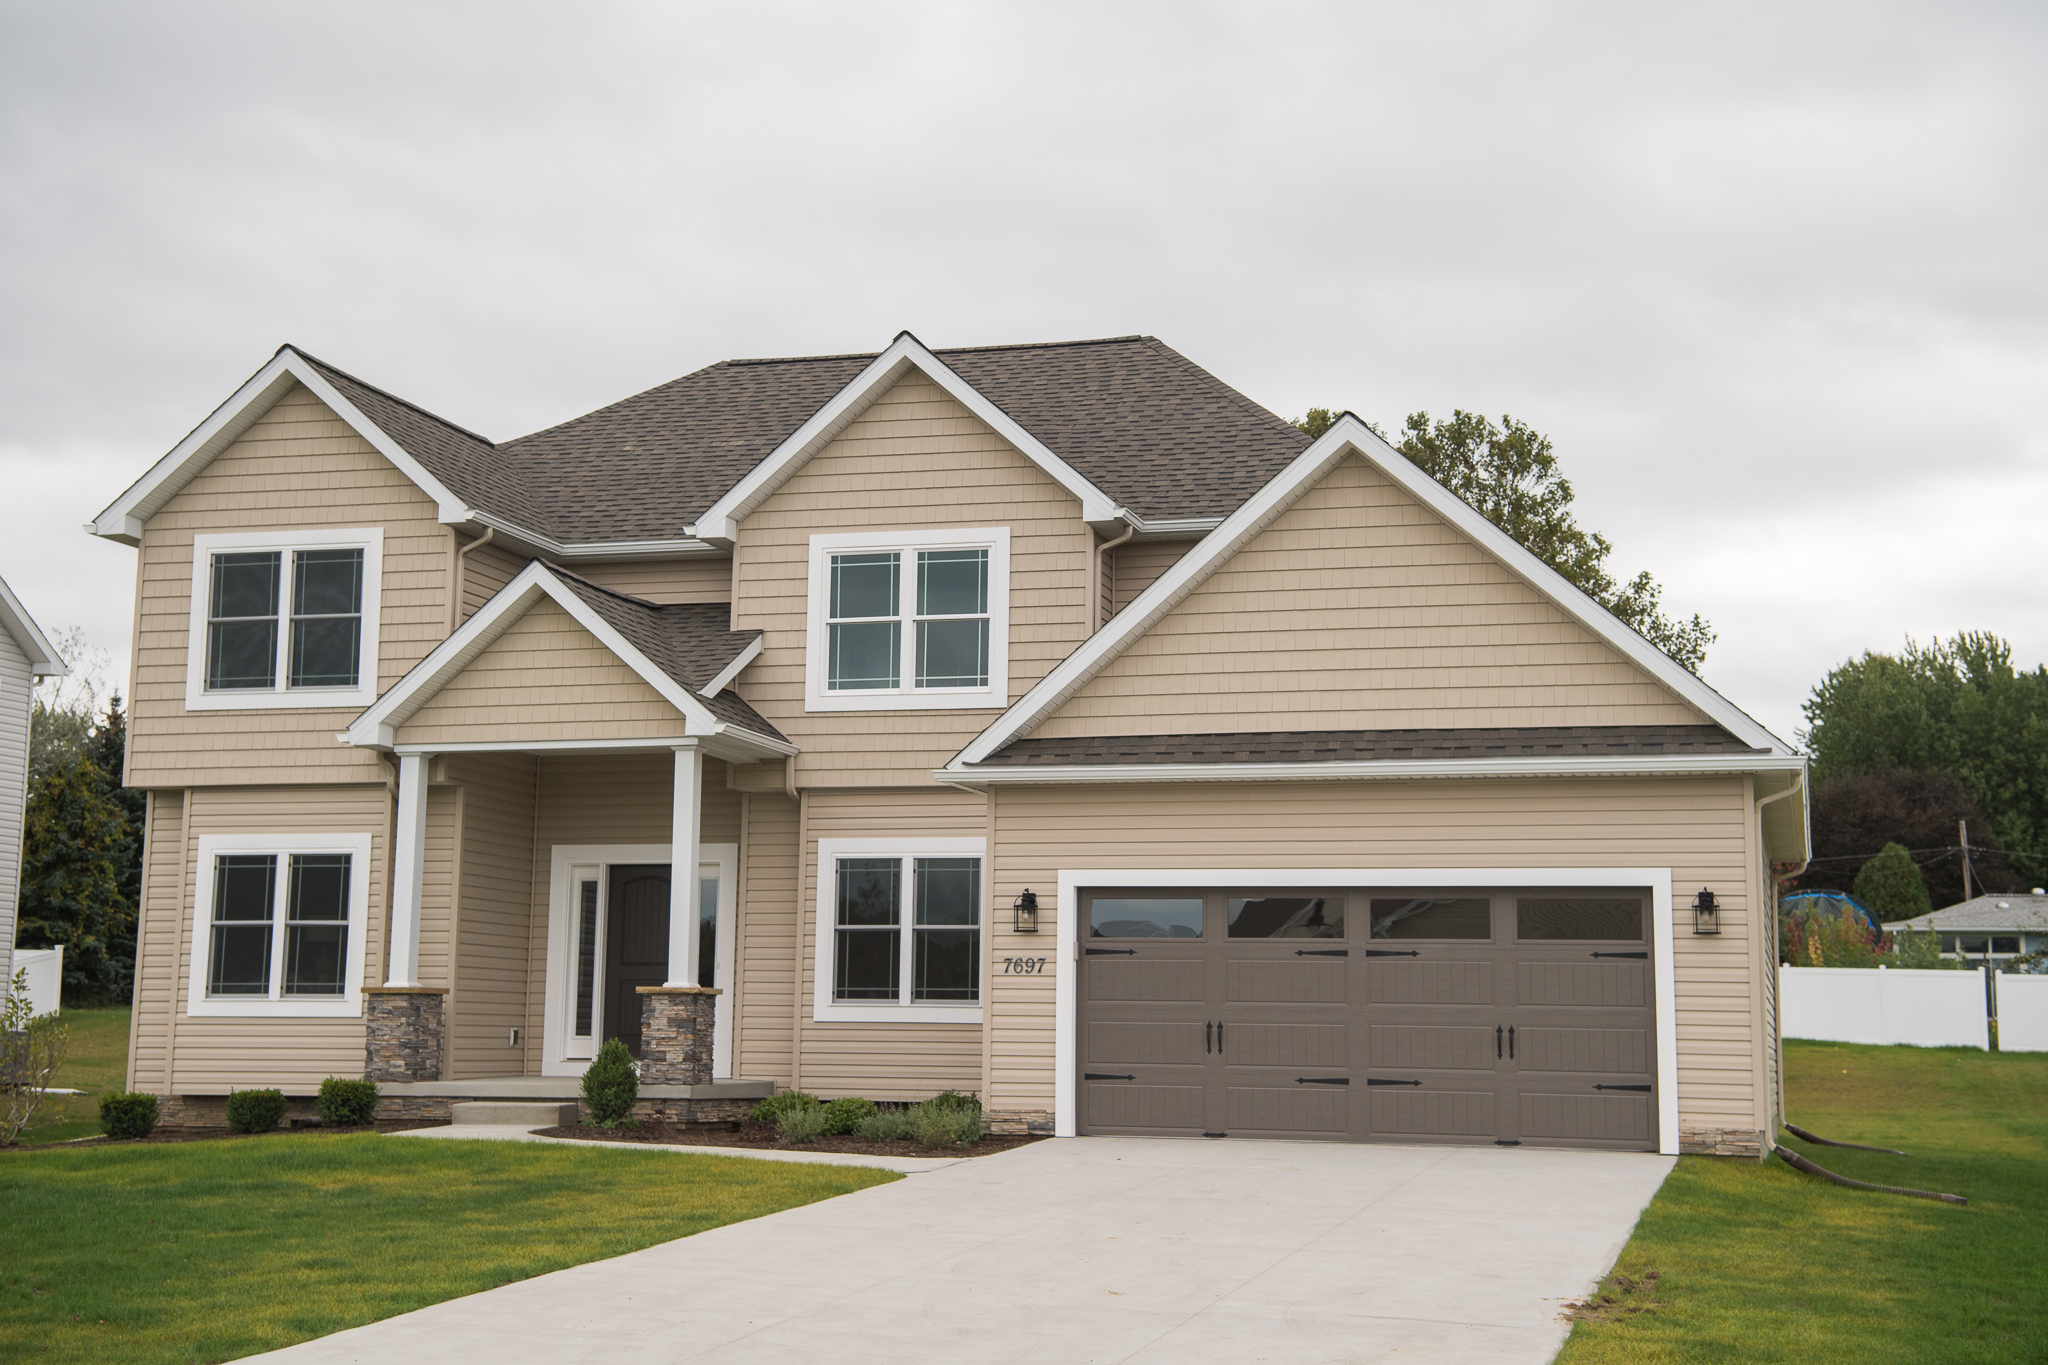 Maleno Custom Built Home in Erie PA